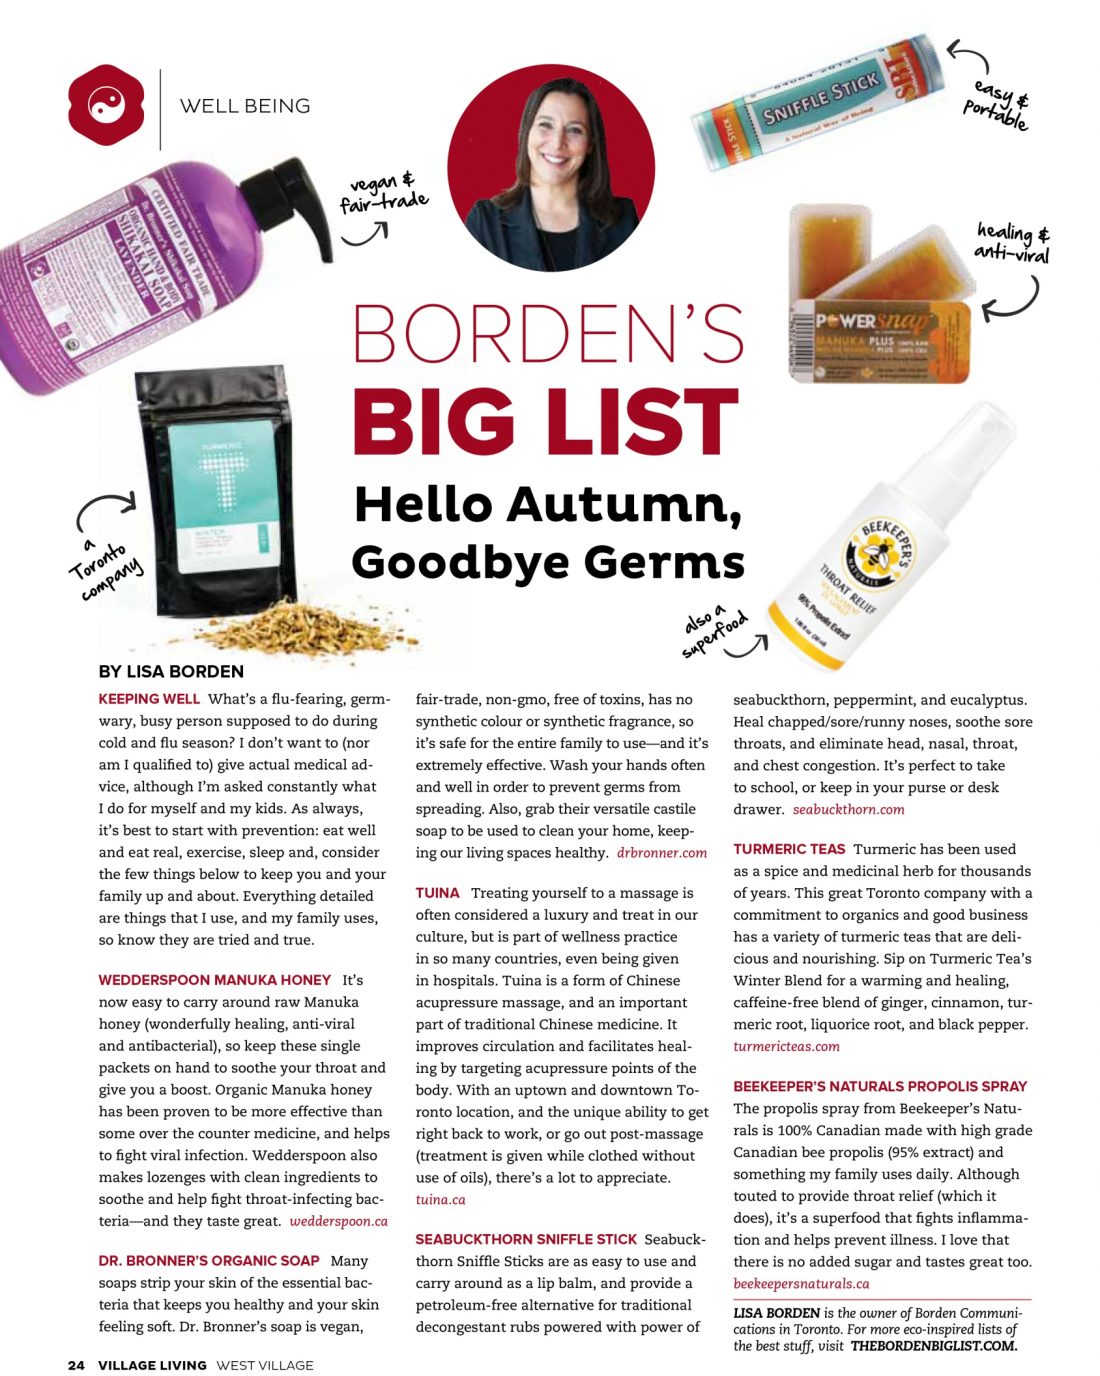 Hello Autumn, Goodbye Germs, Village Living Magazine